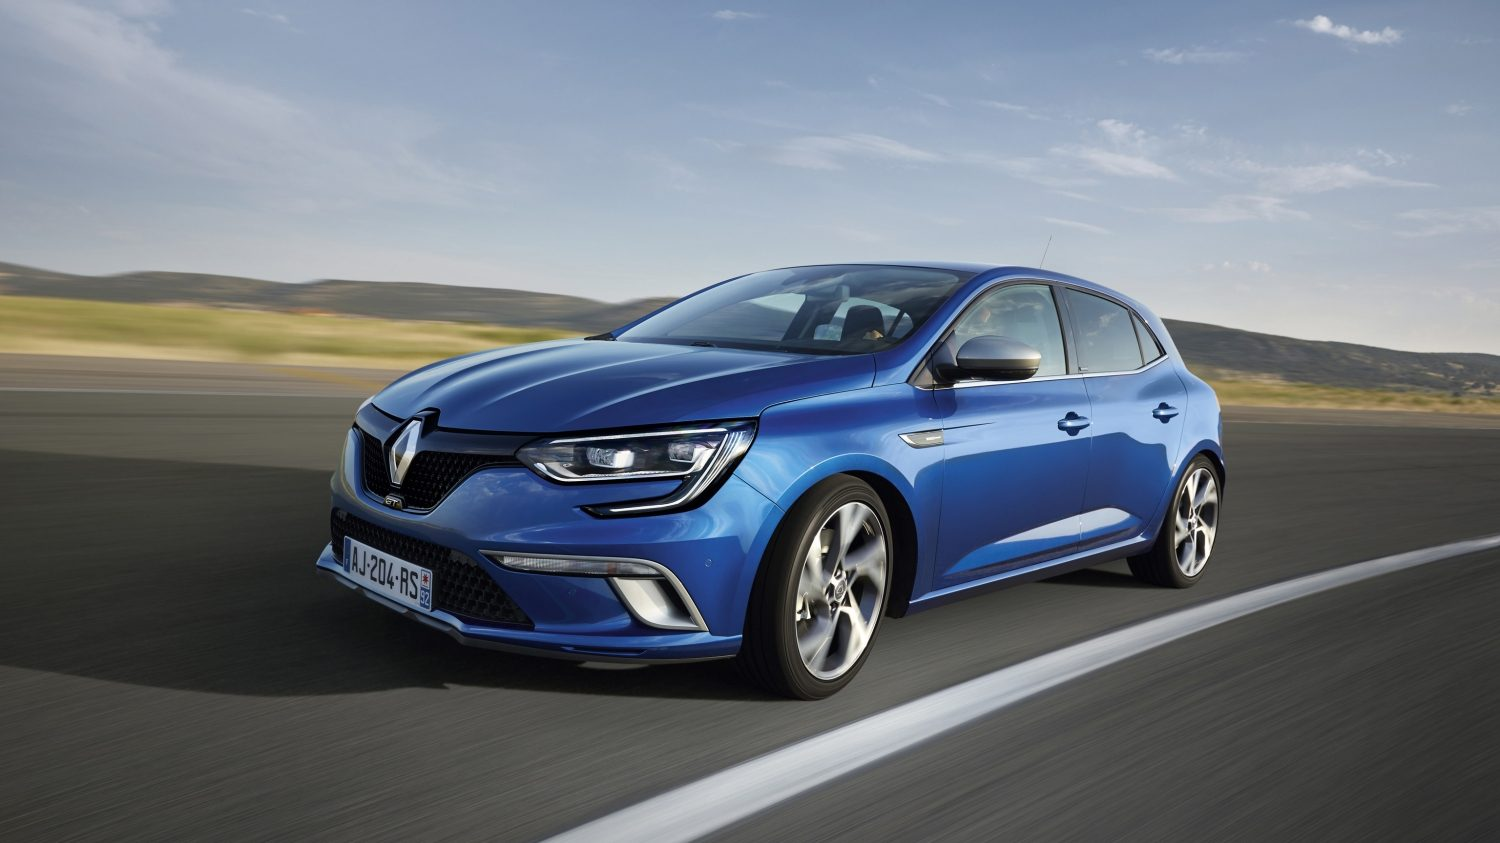 Renault Megane Wallpapers Vehicles Hq Renault Megane Pictures 4k Wallpapers 2019